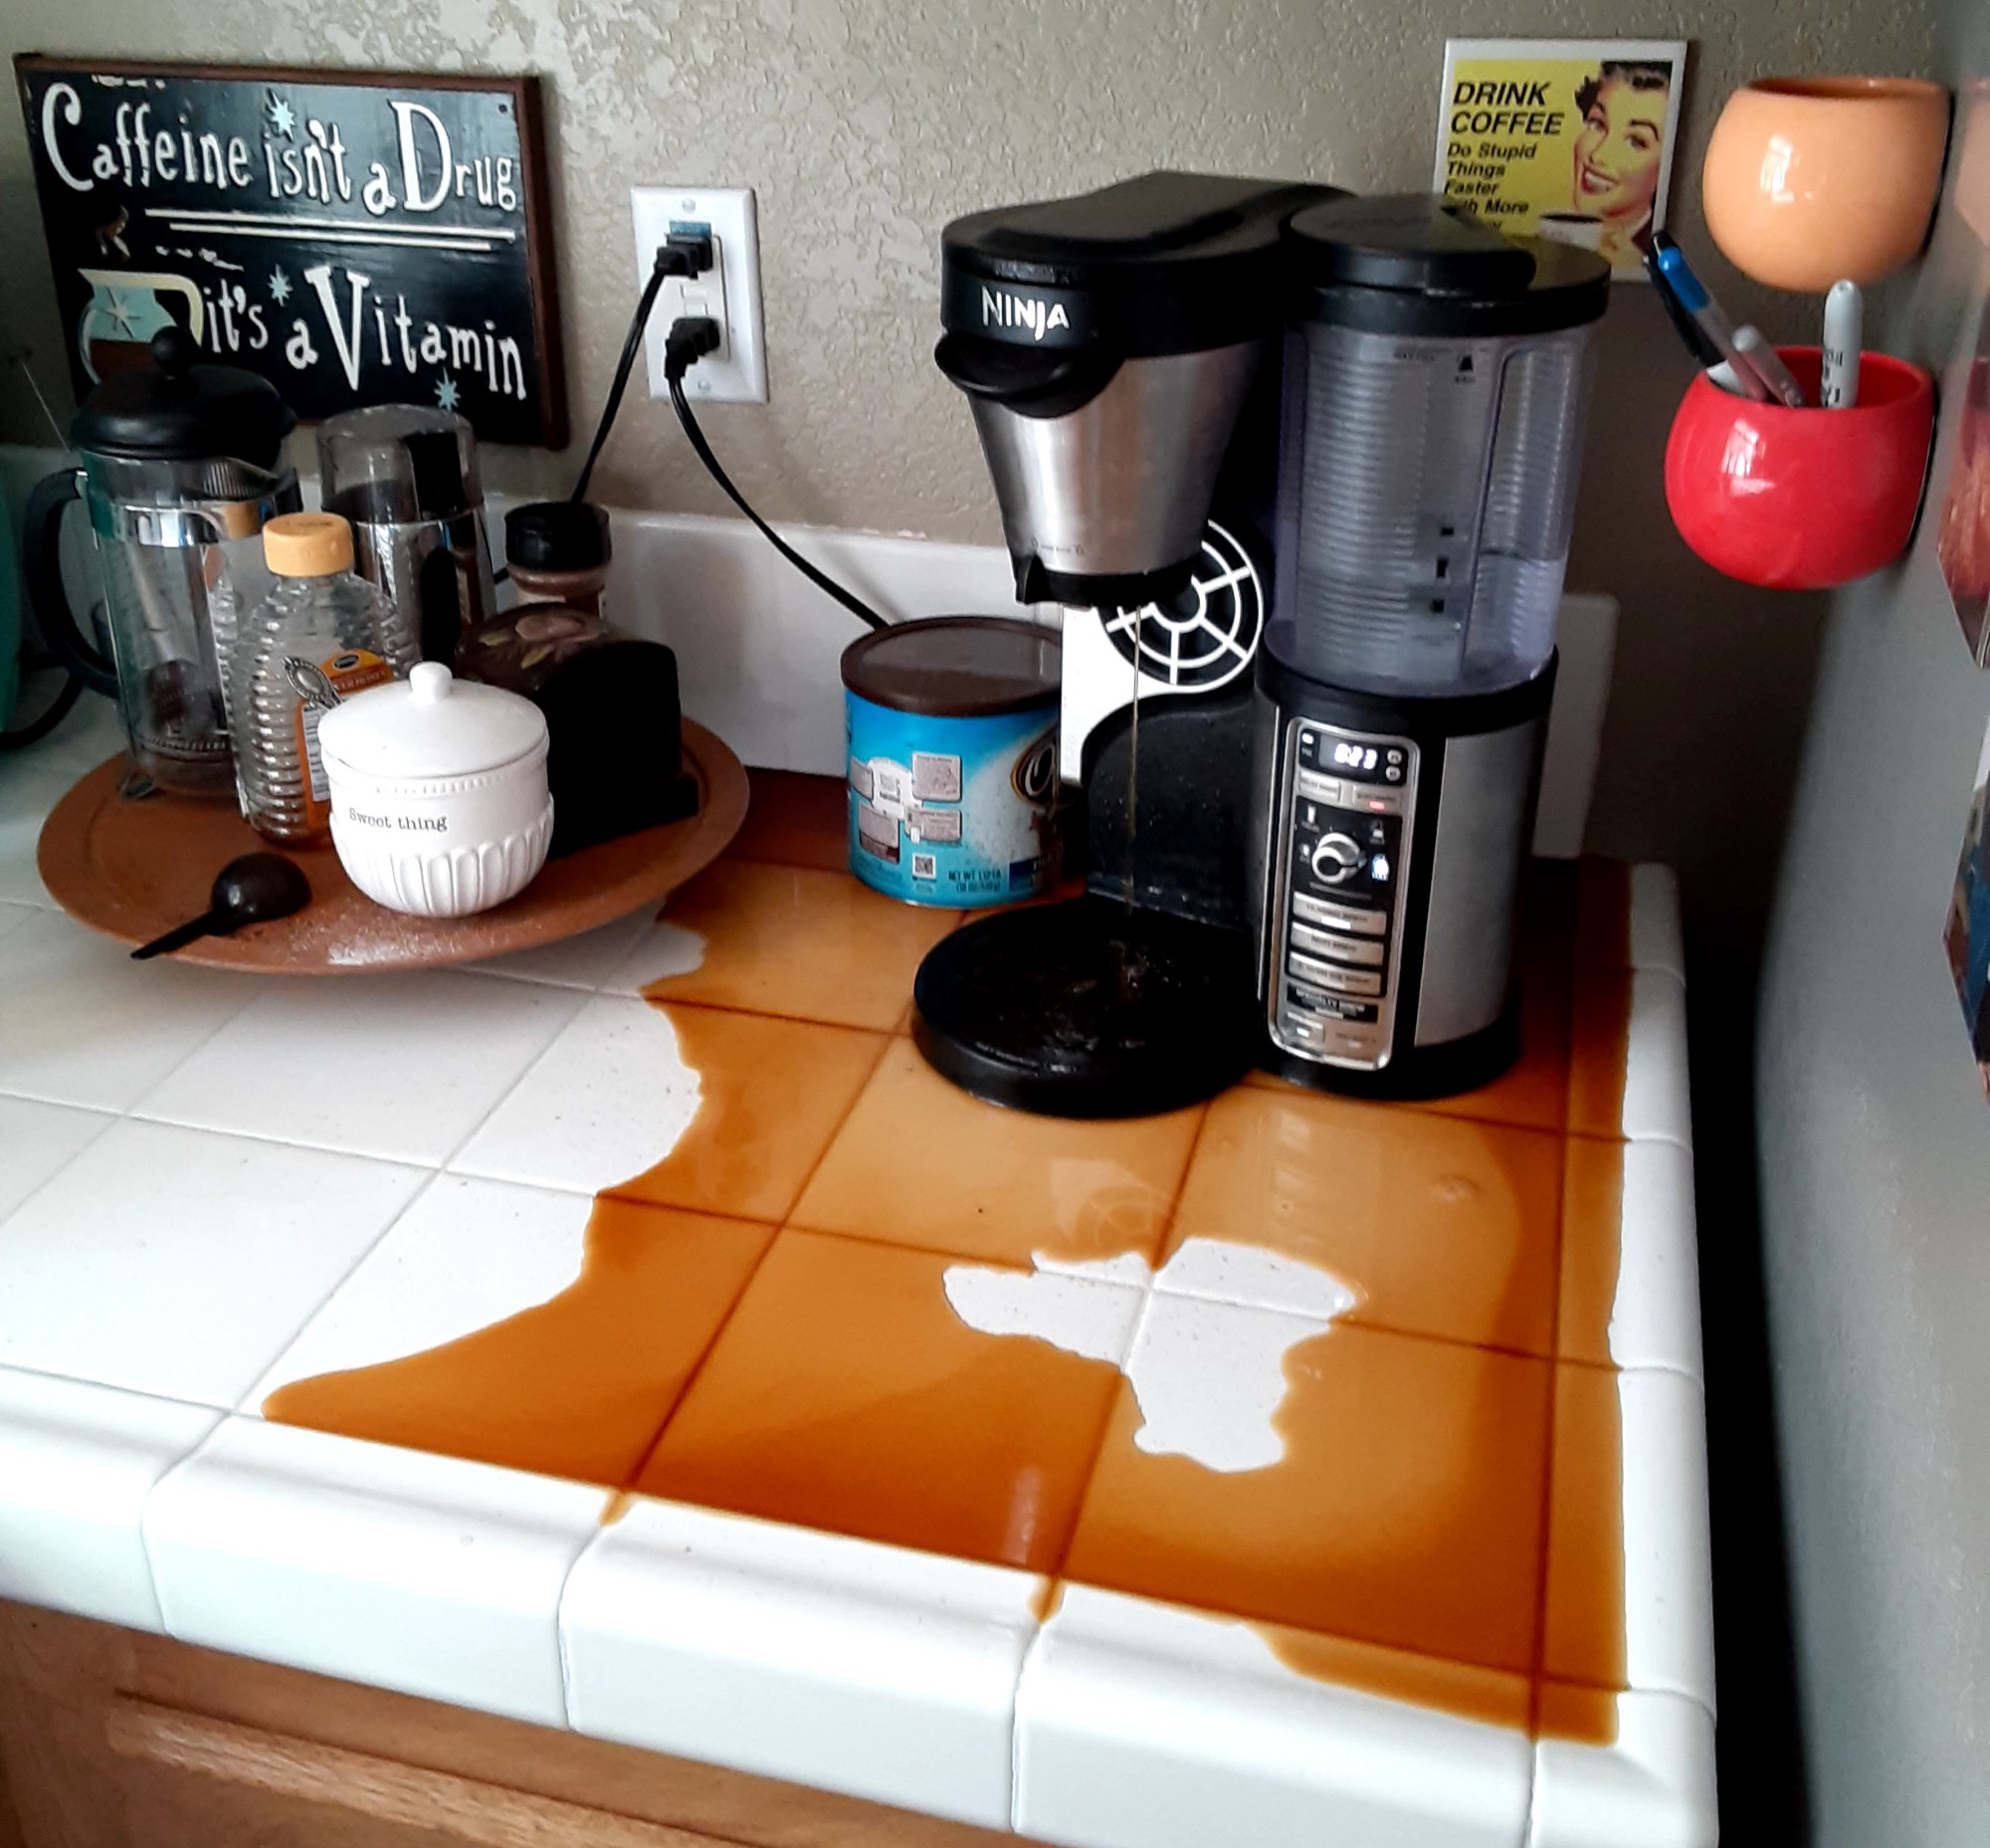 My real-life coffeemaker  without a carafe, coffee spilled widely over the countertop.